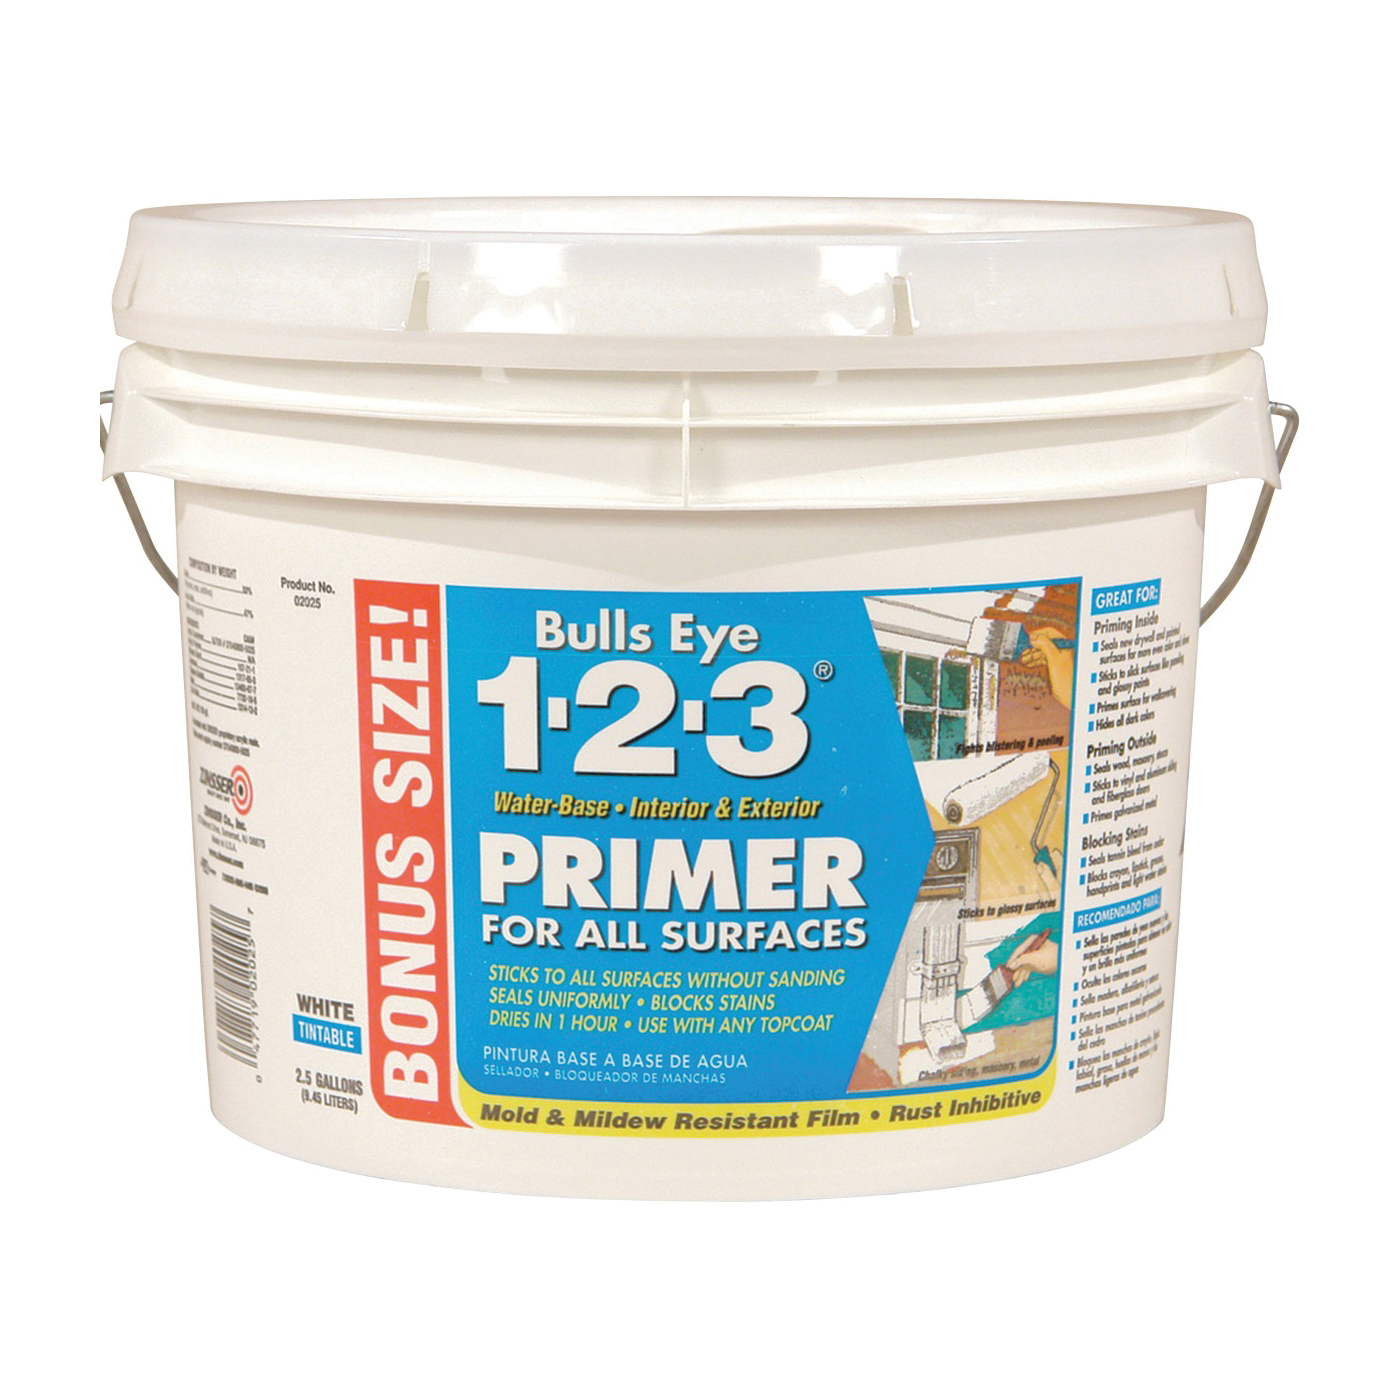 Picture of ZINSSER 02025 Primer, Egg Shell, White, 2.5 gal